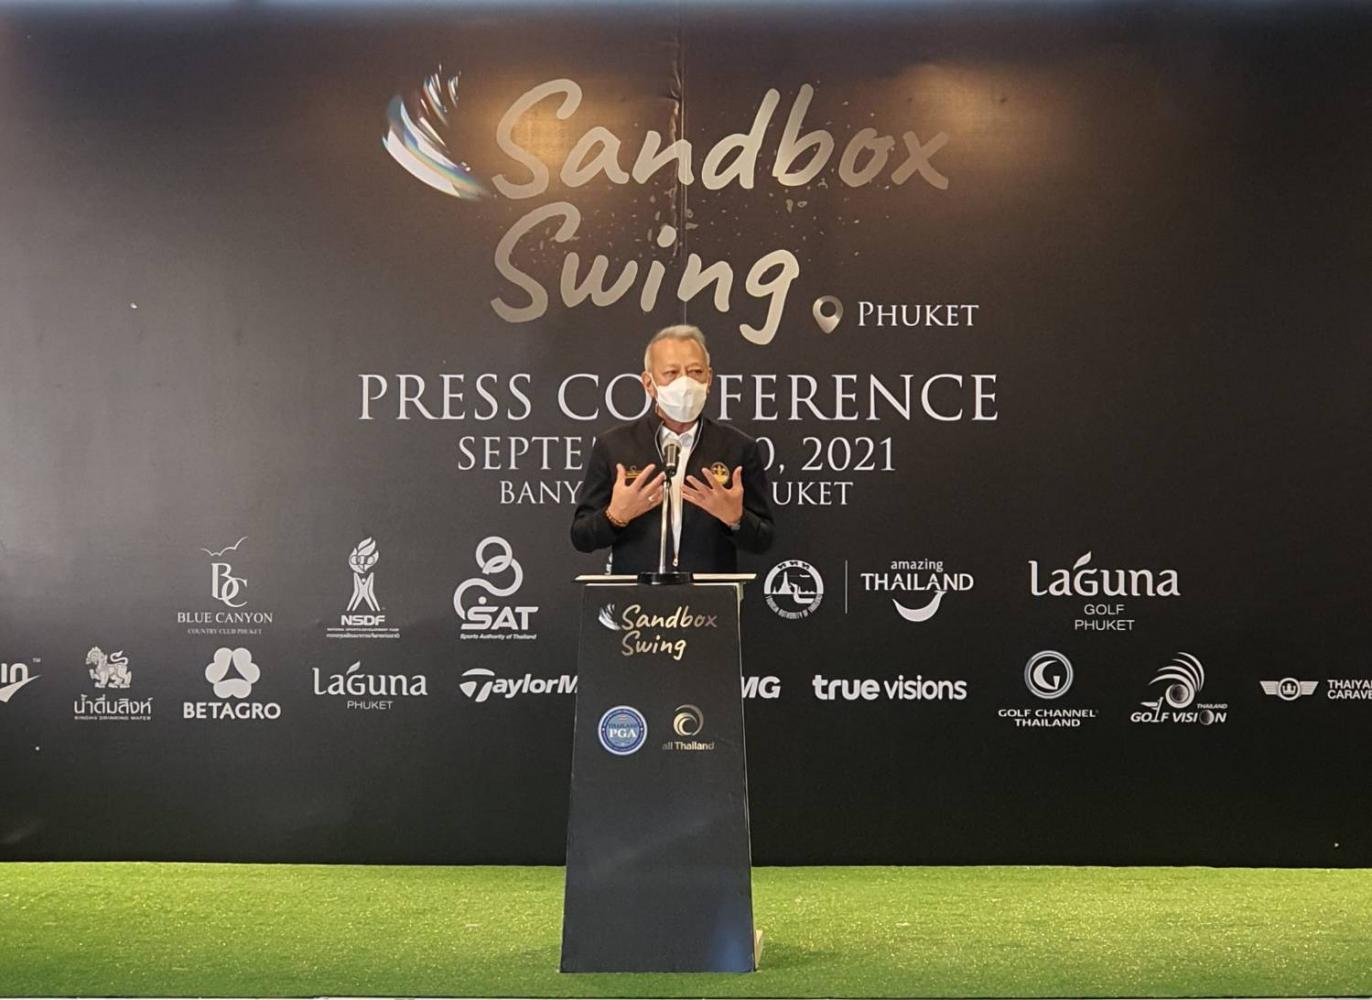 Tourism and Sports Minister Phiphat Ratchakitprakarn launches the Sandbox Swing project.